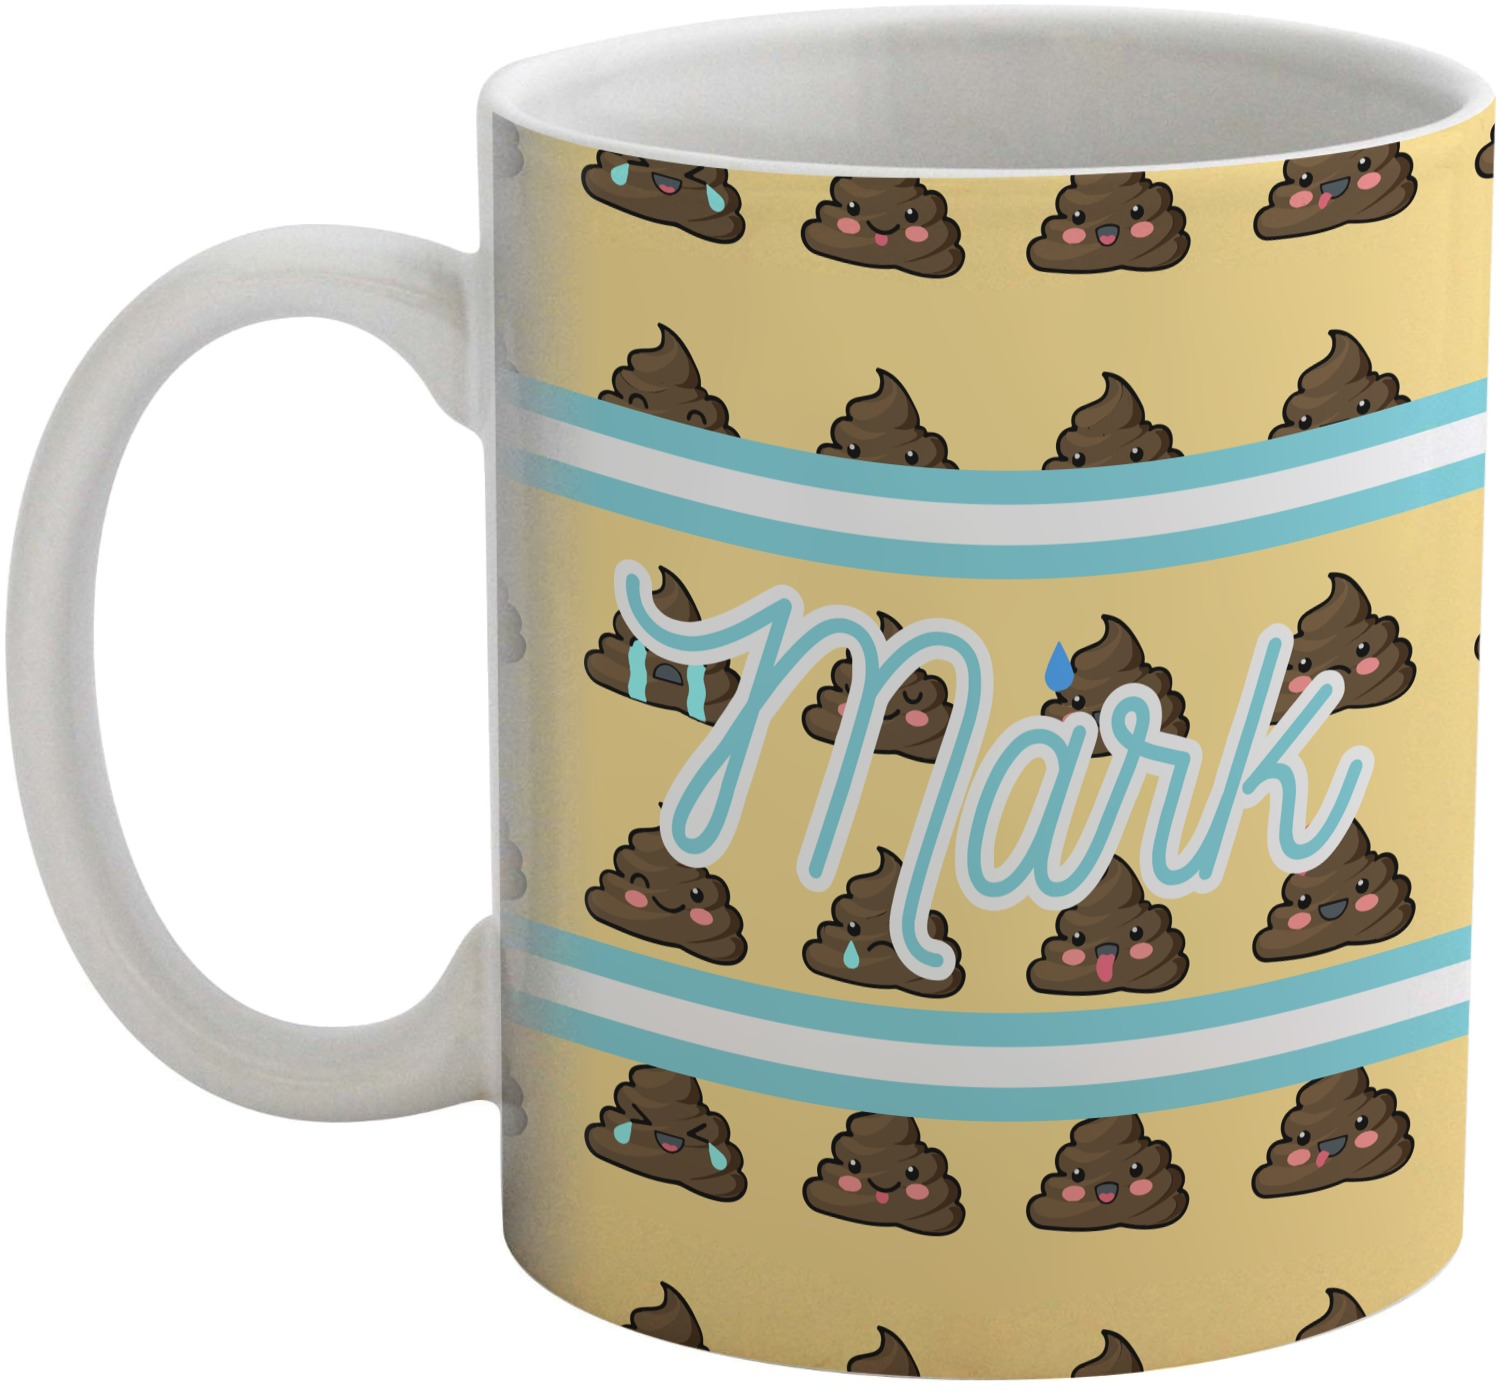 Coffee Mugpersonalized Coffee Mugpersonalized Poop Poop Emoji Poop Emoji Coffee Coffee Mugpersonalized Emoji Poop Emoji m0wvnN8